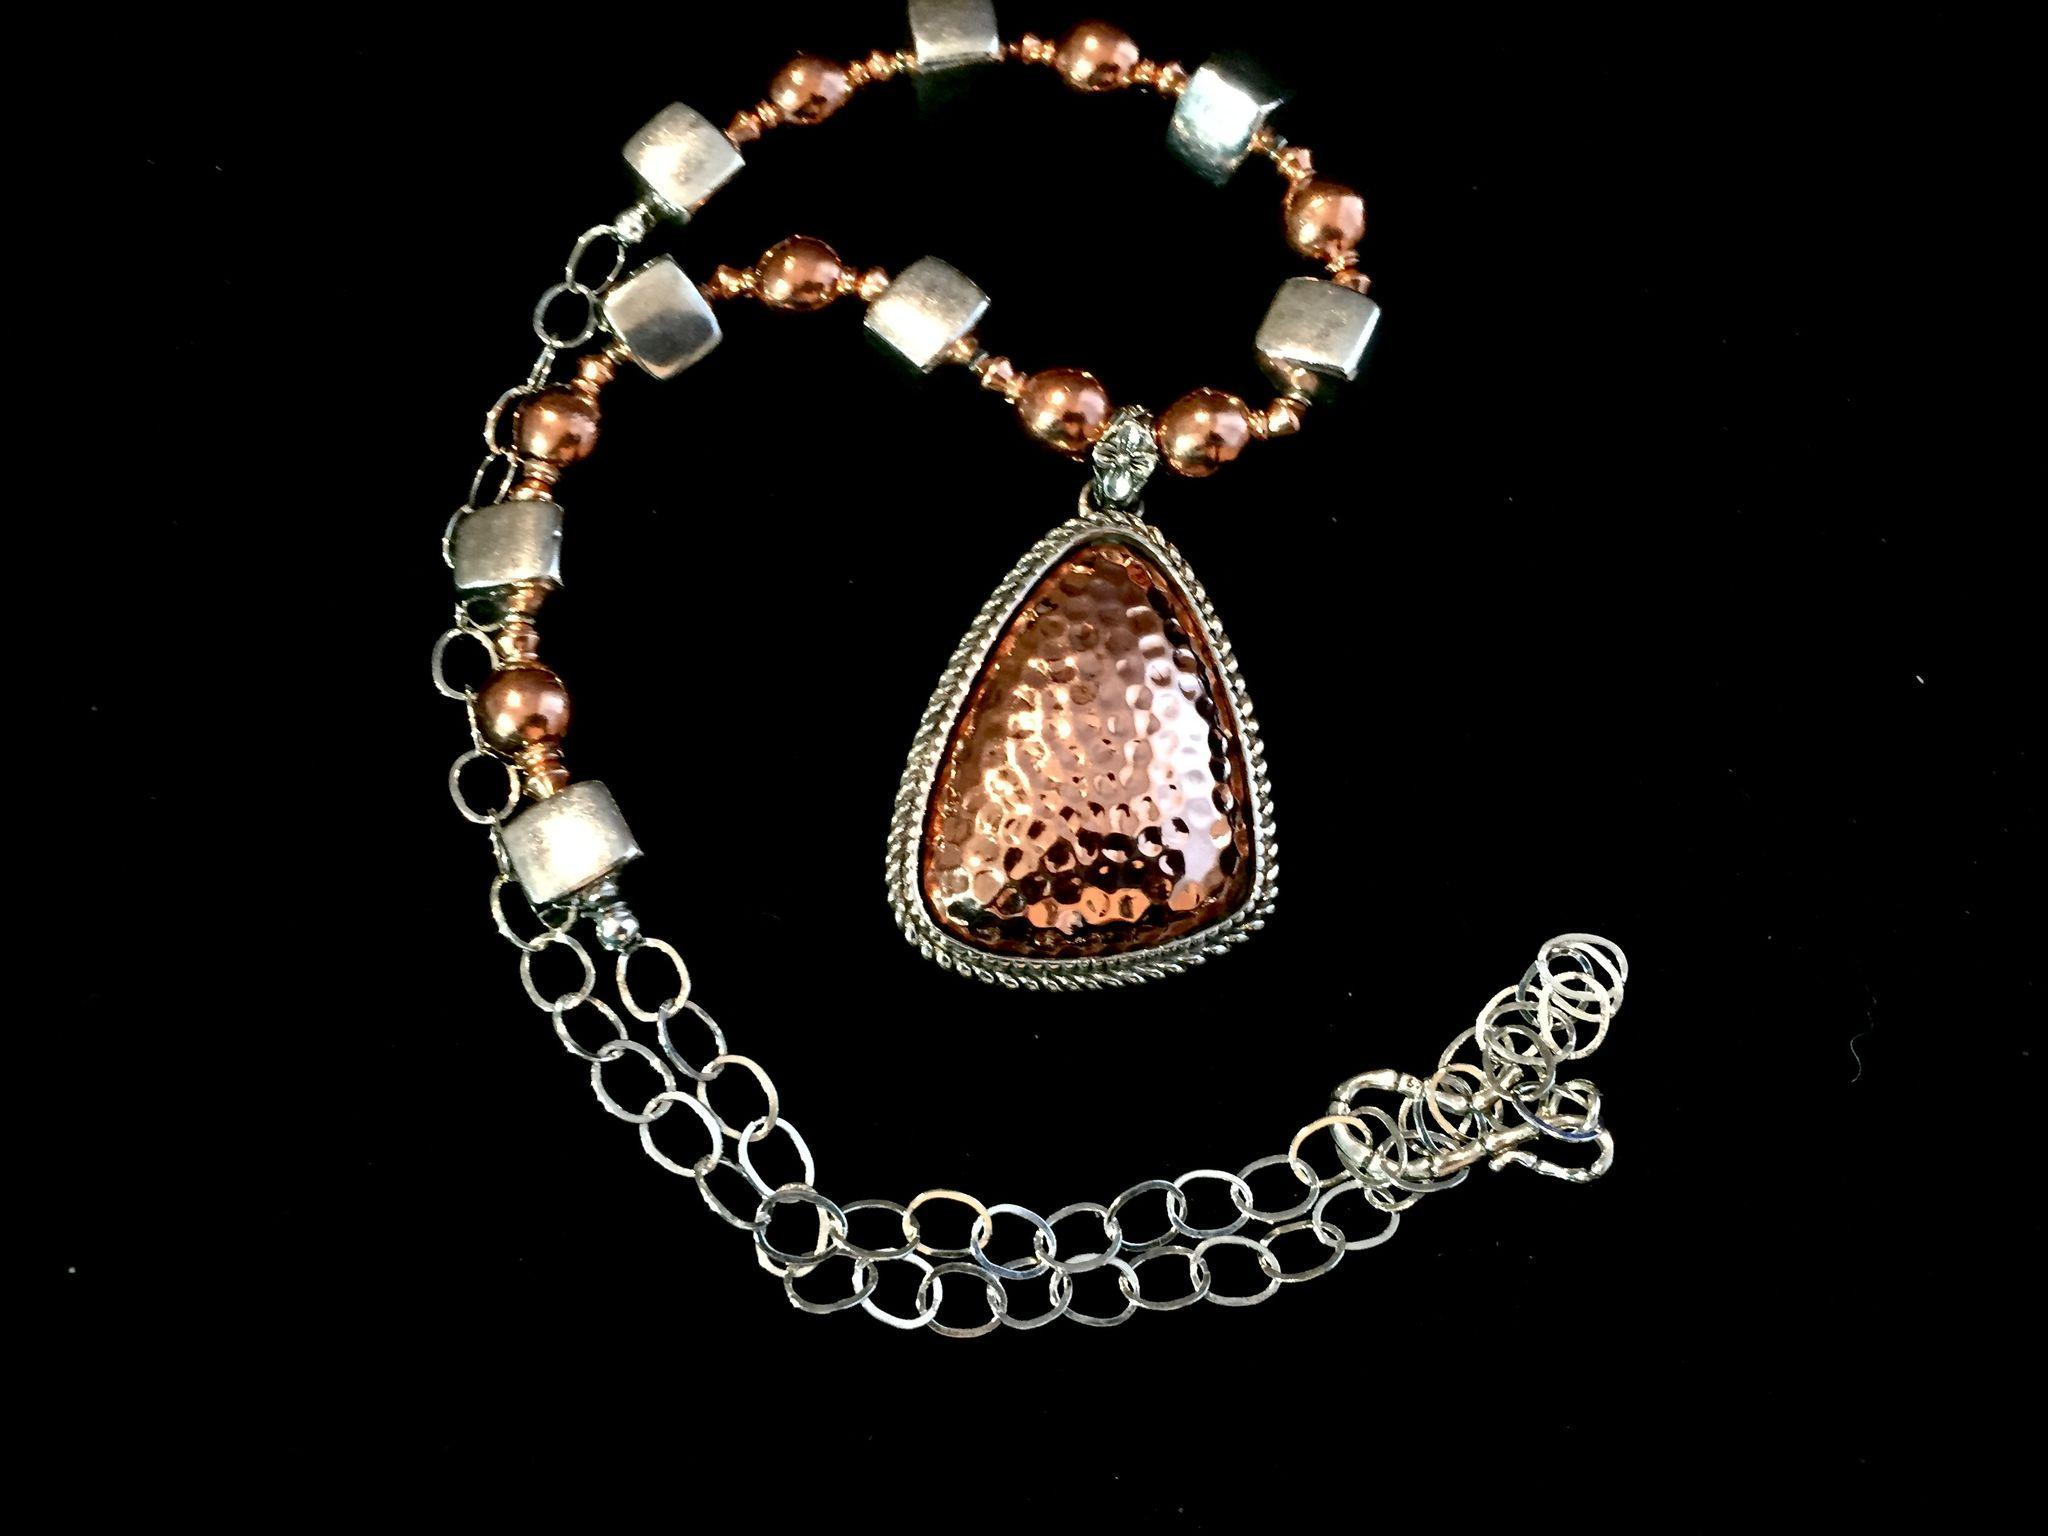 Awesome Copper & Sterling Silver Necklace, 22-24 Inches